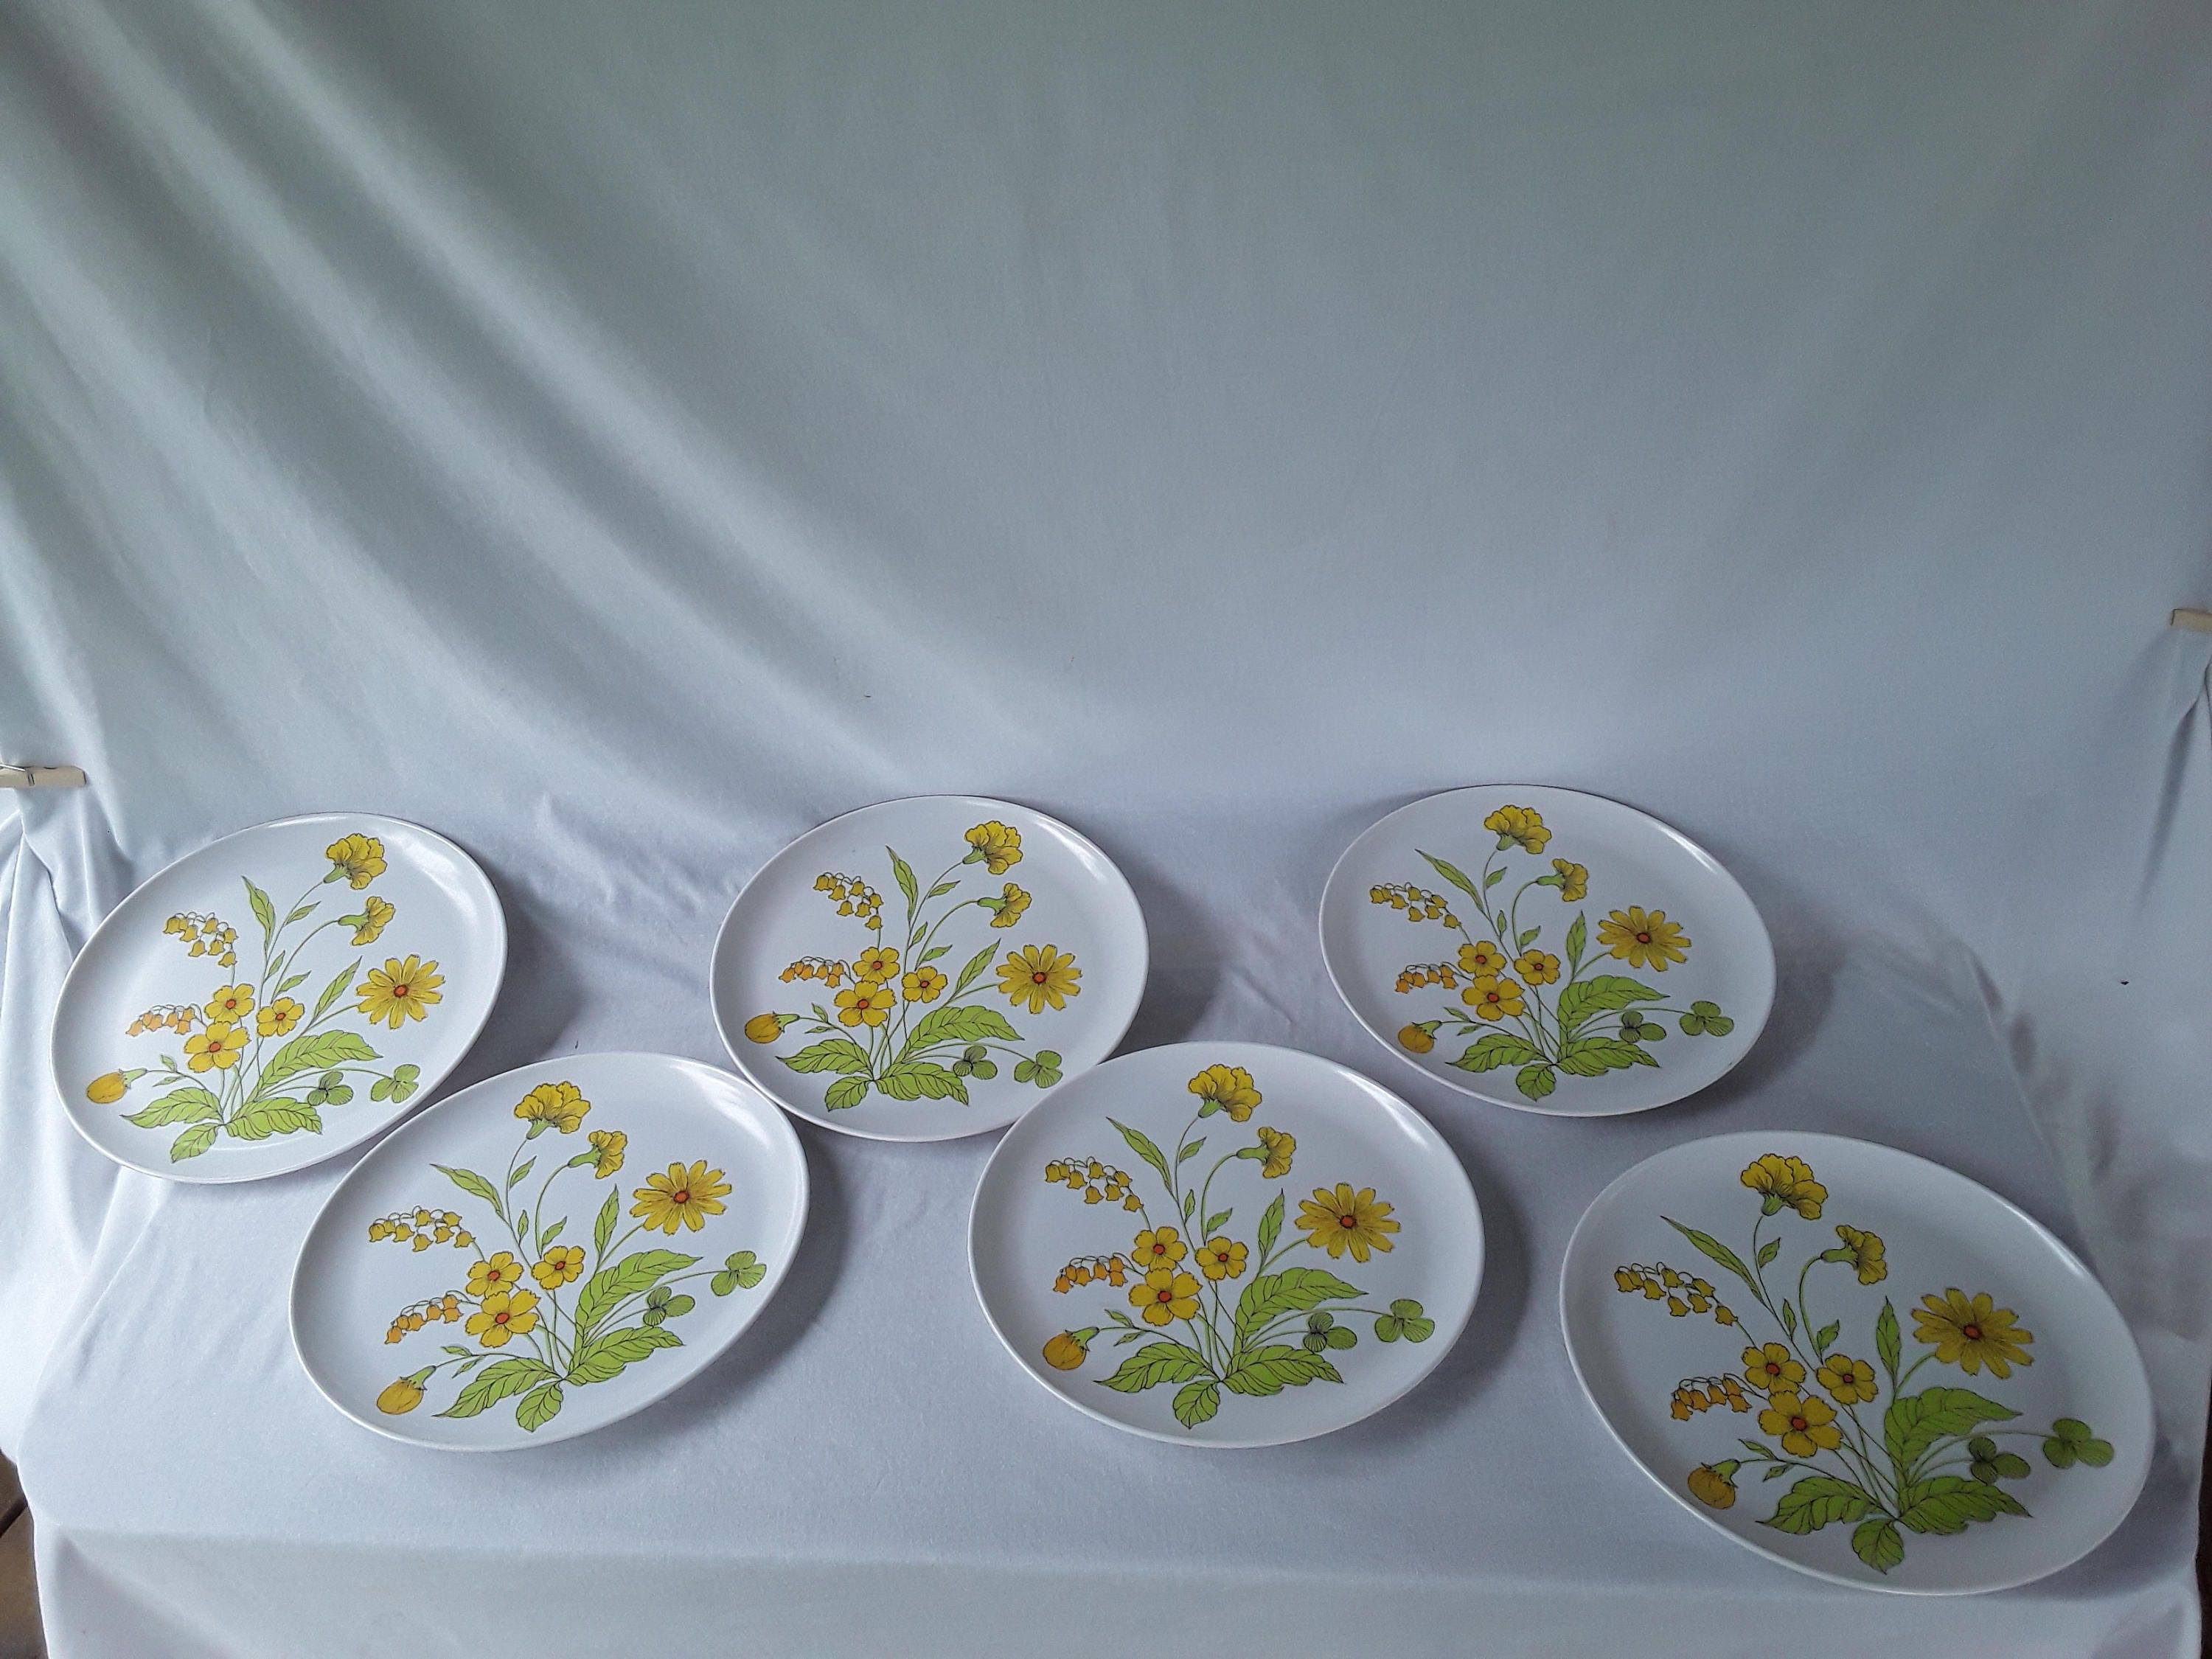 Melmac #519 Dinner Plate Yellow Flowers \u0026 Green Steams & Melmac #519 Dinner Plate Yellow Flowers \u0026 Green Steams ...